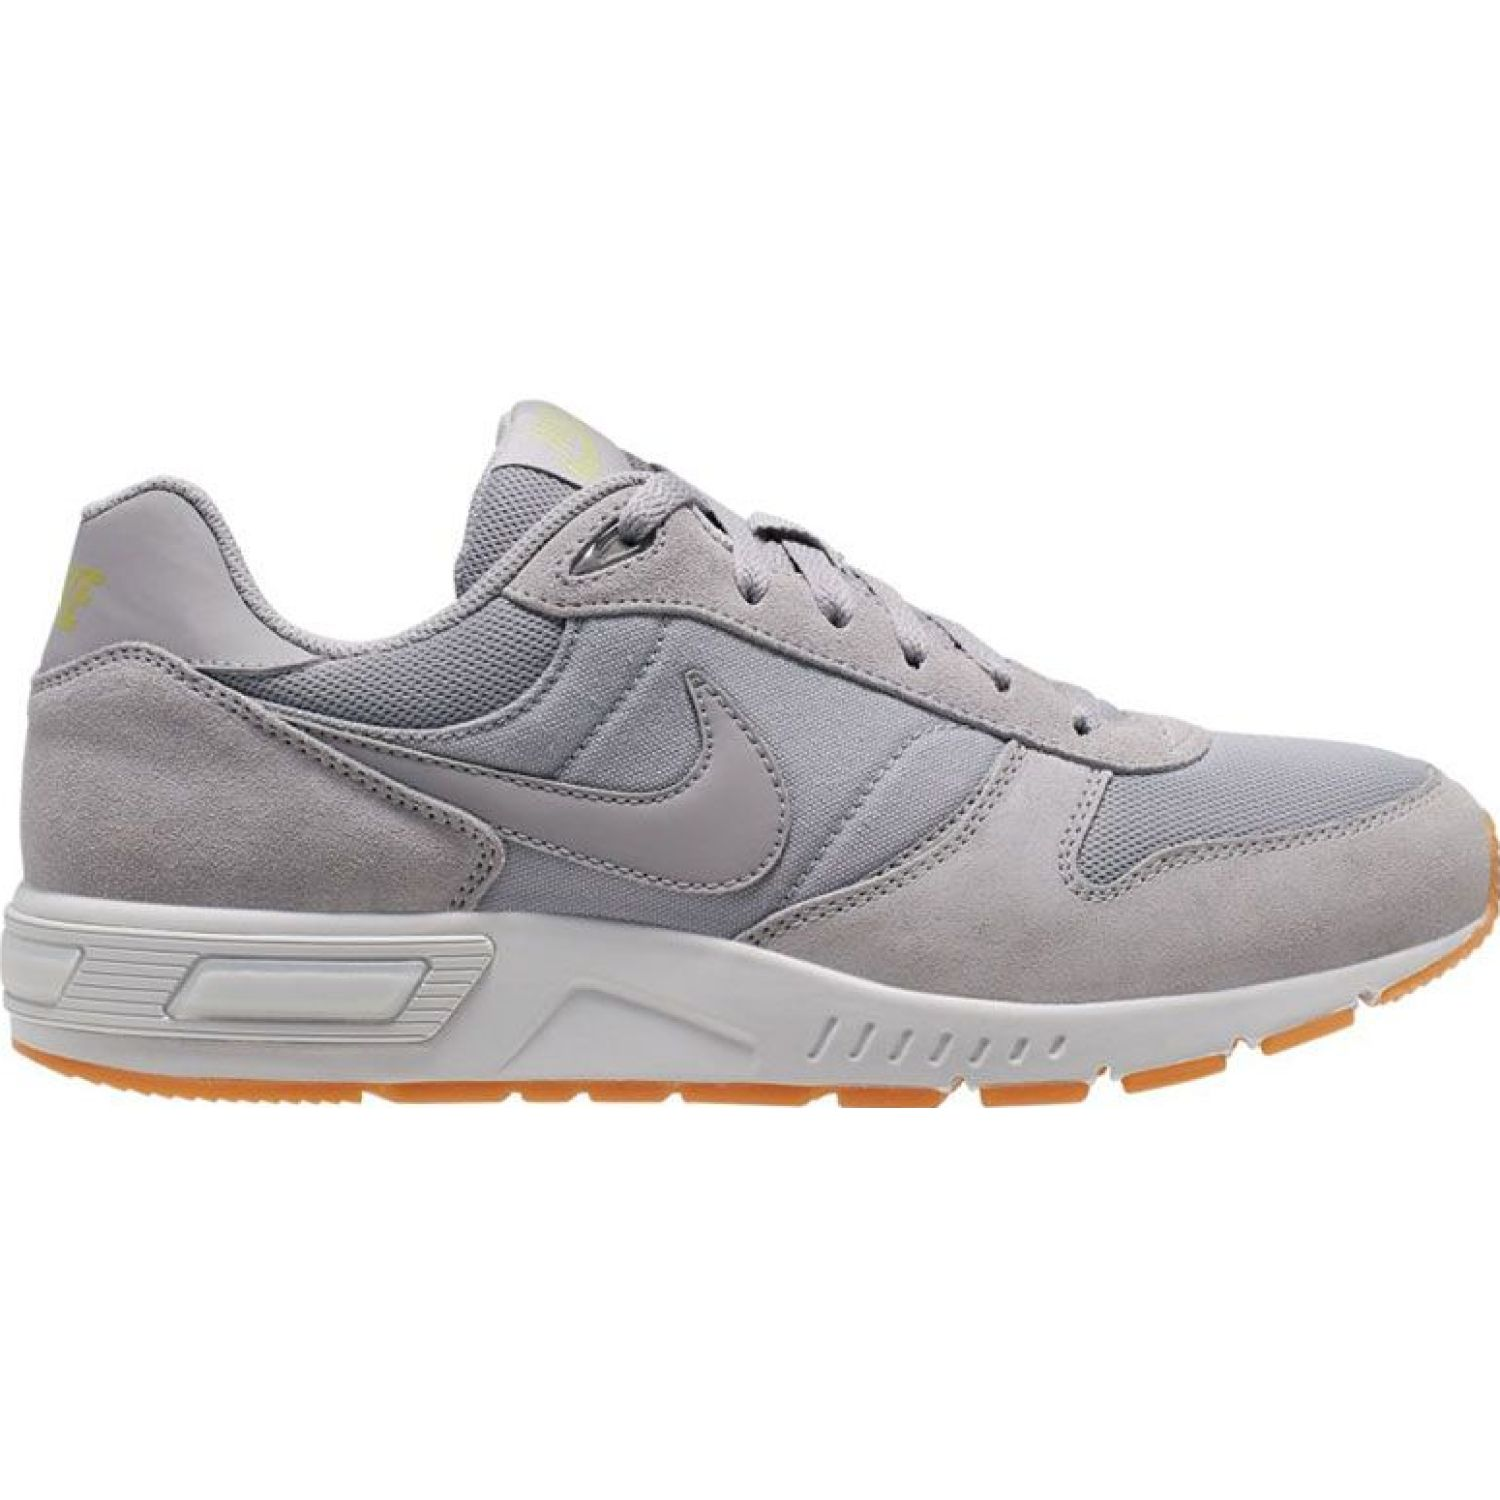 Nike NIKE NIGHTGAZER Gris Walking